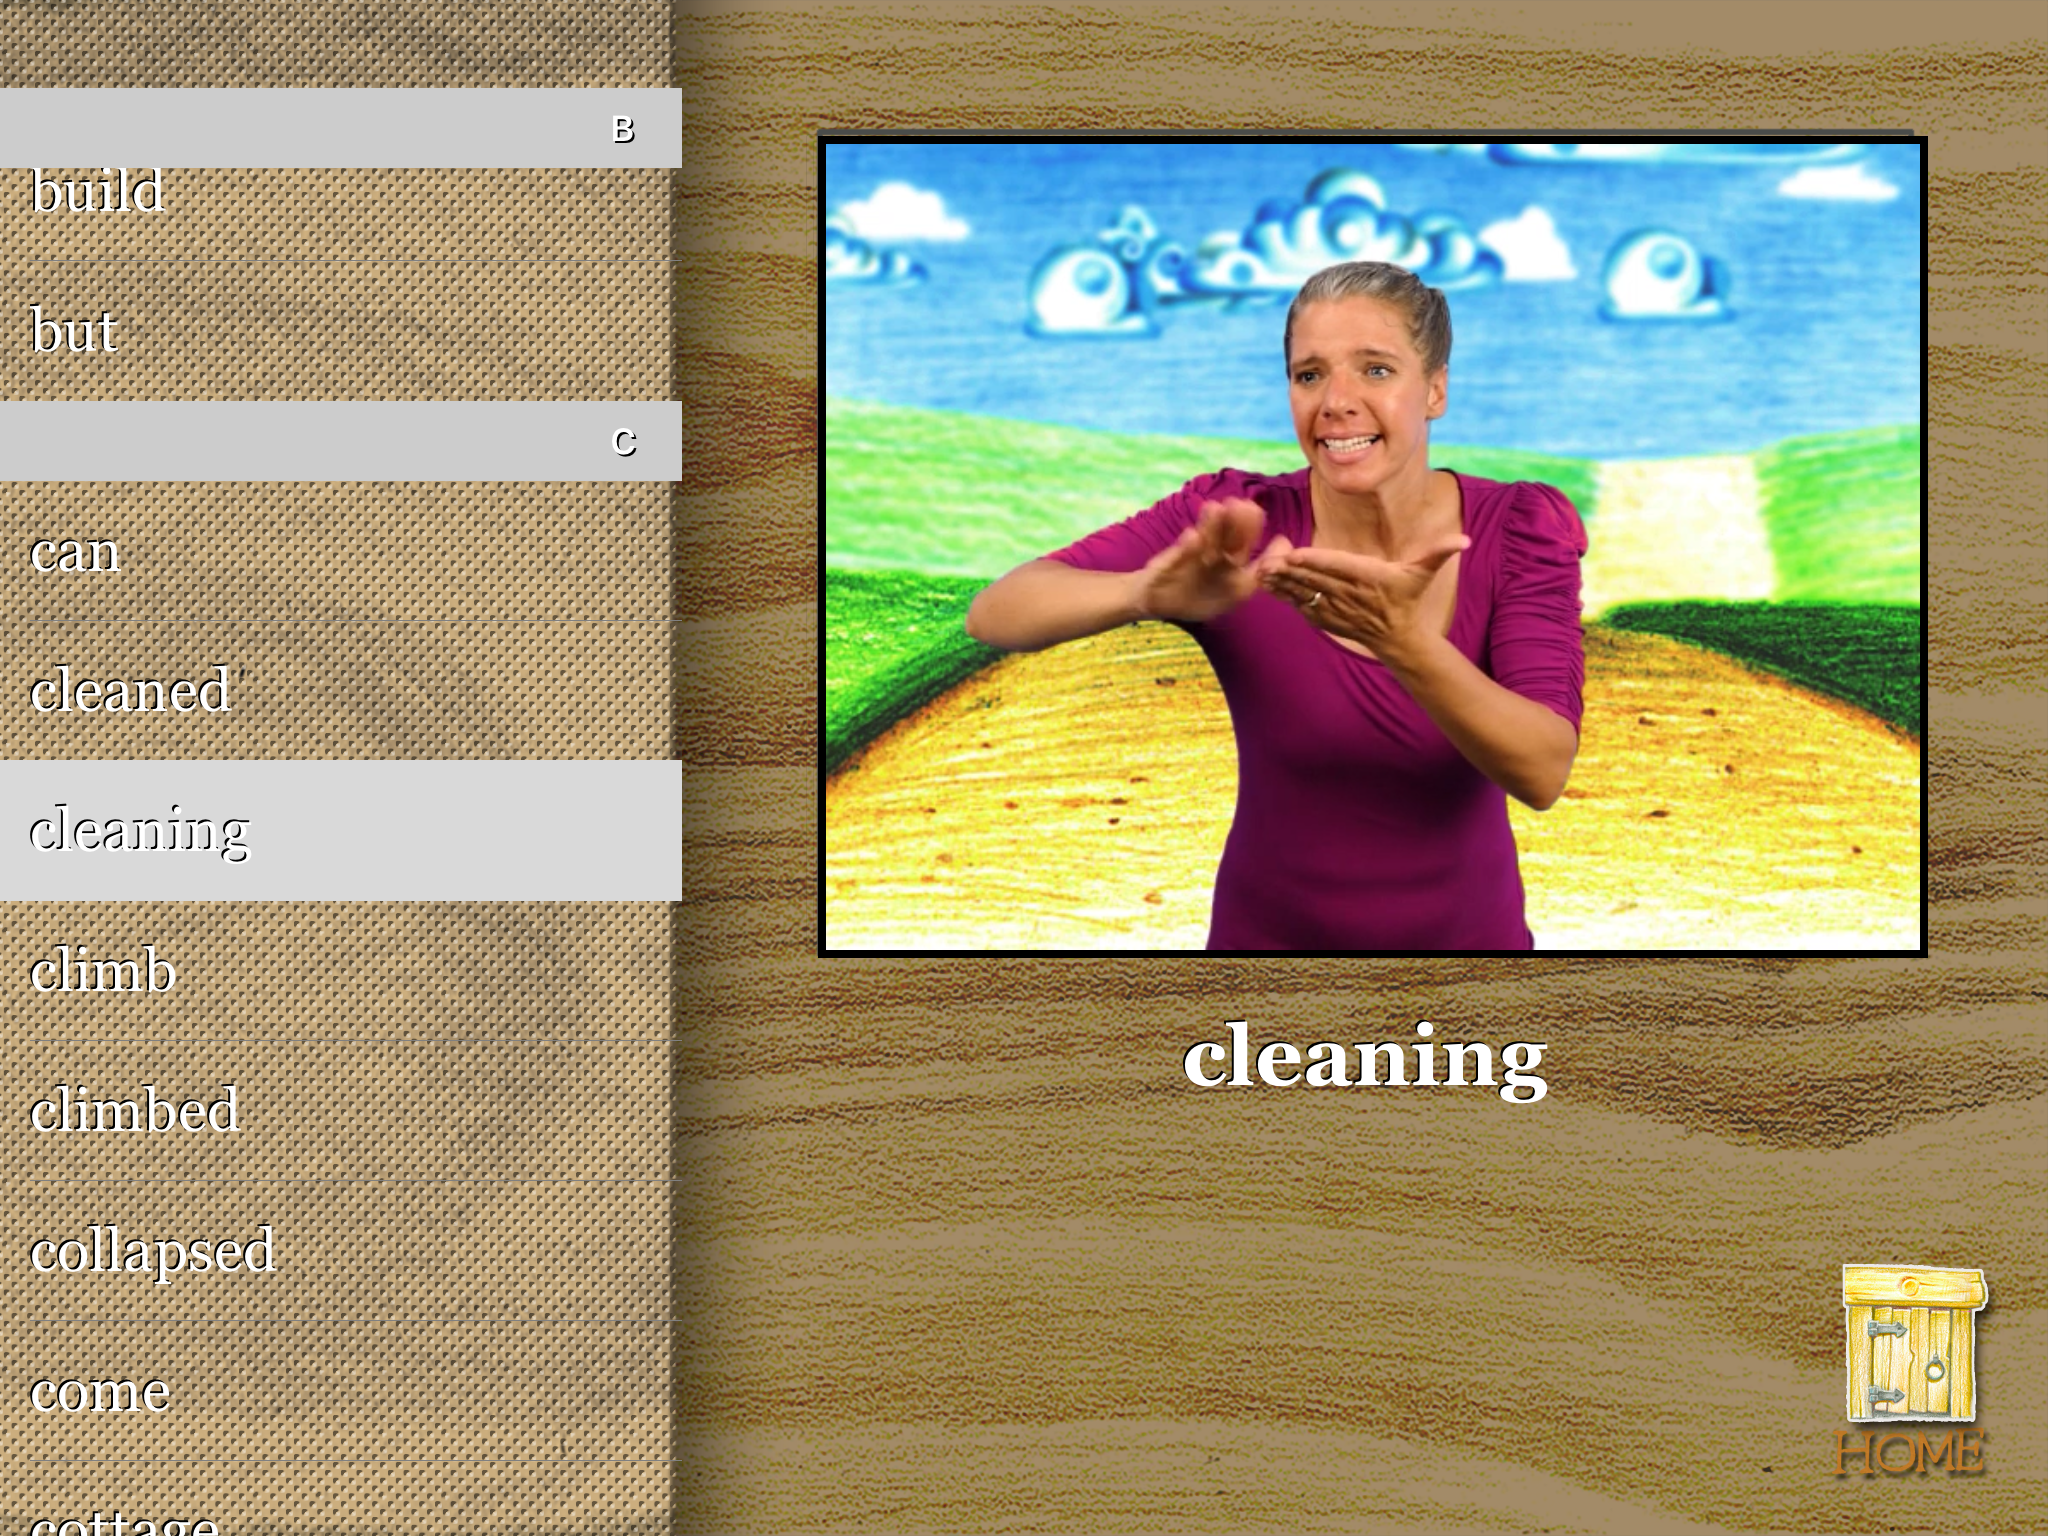 """Teremok Glossary """"Cleaning"""", 2048 x 1536, 6.6 MB, Use for Retina Display"""